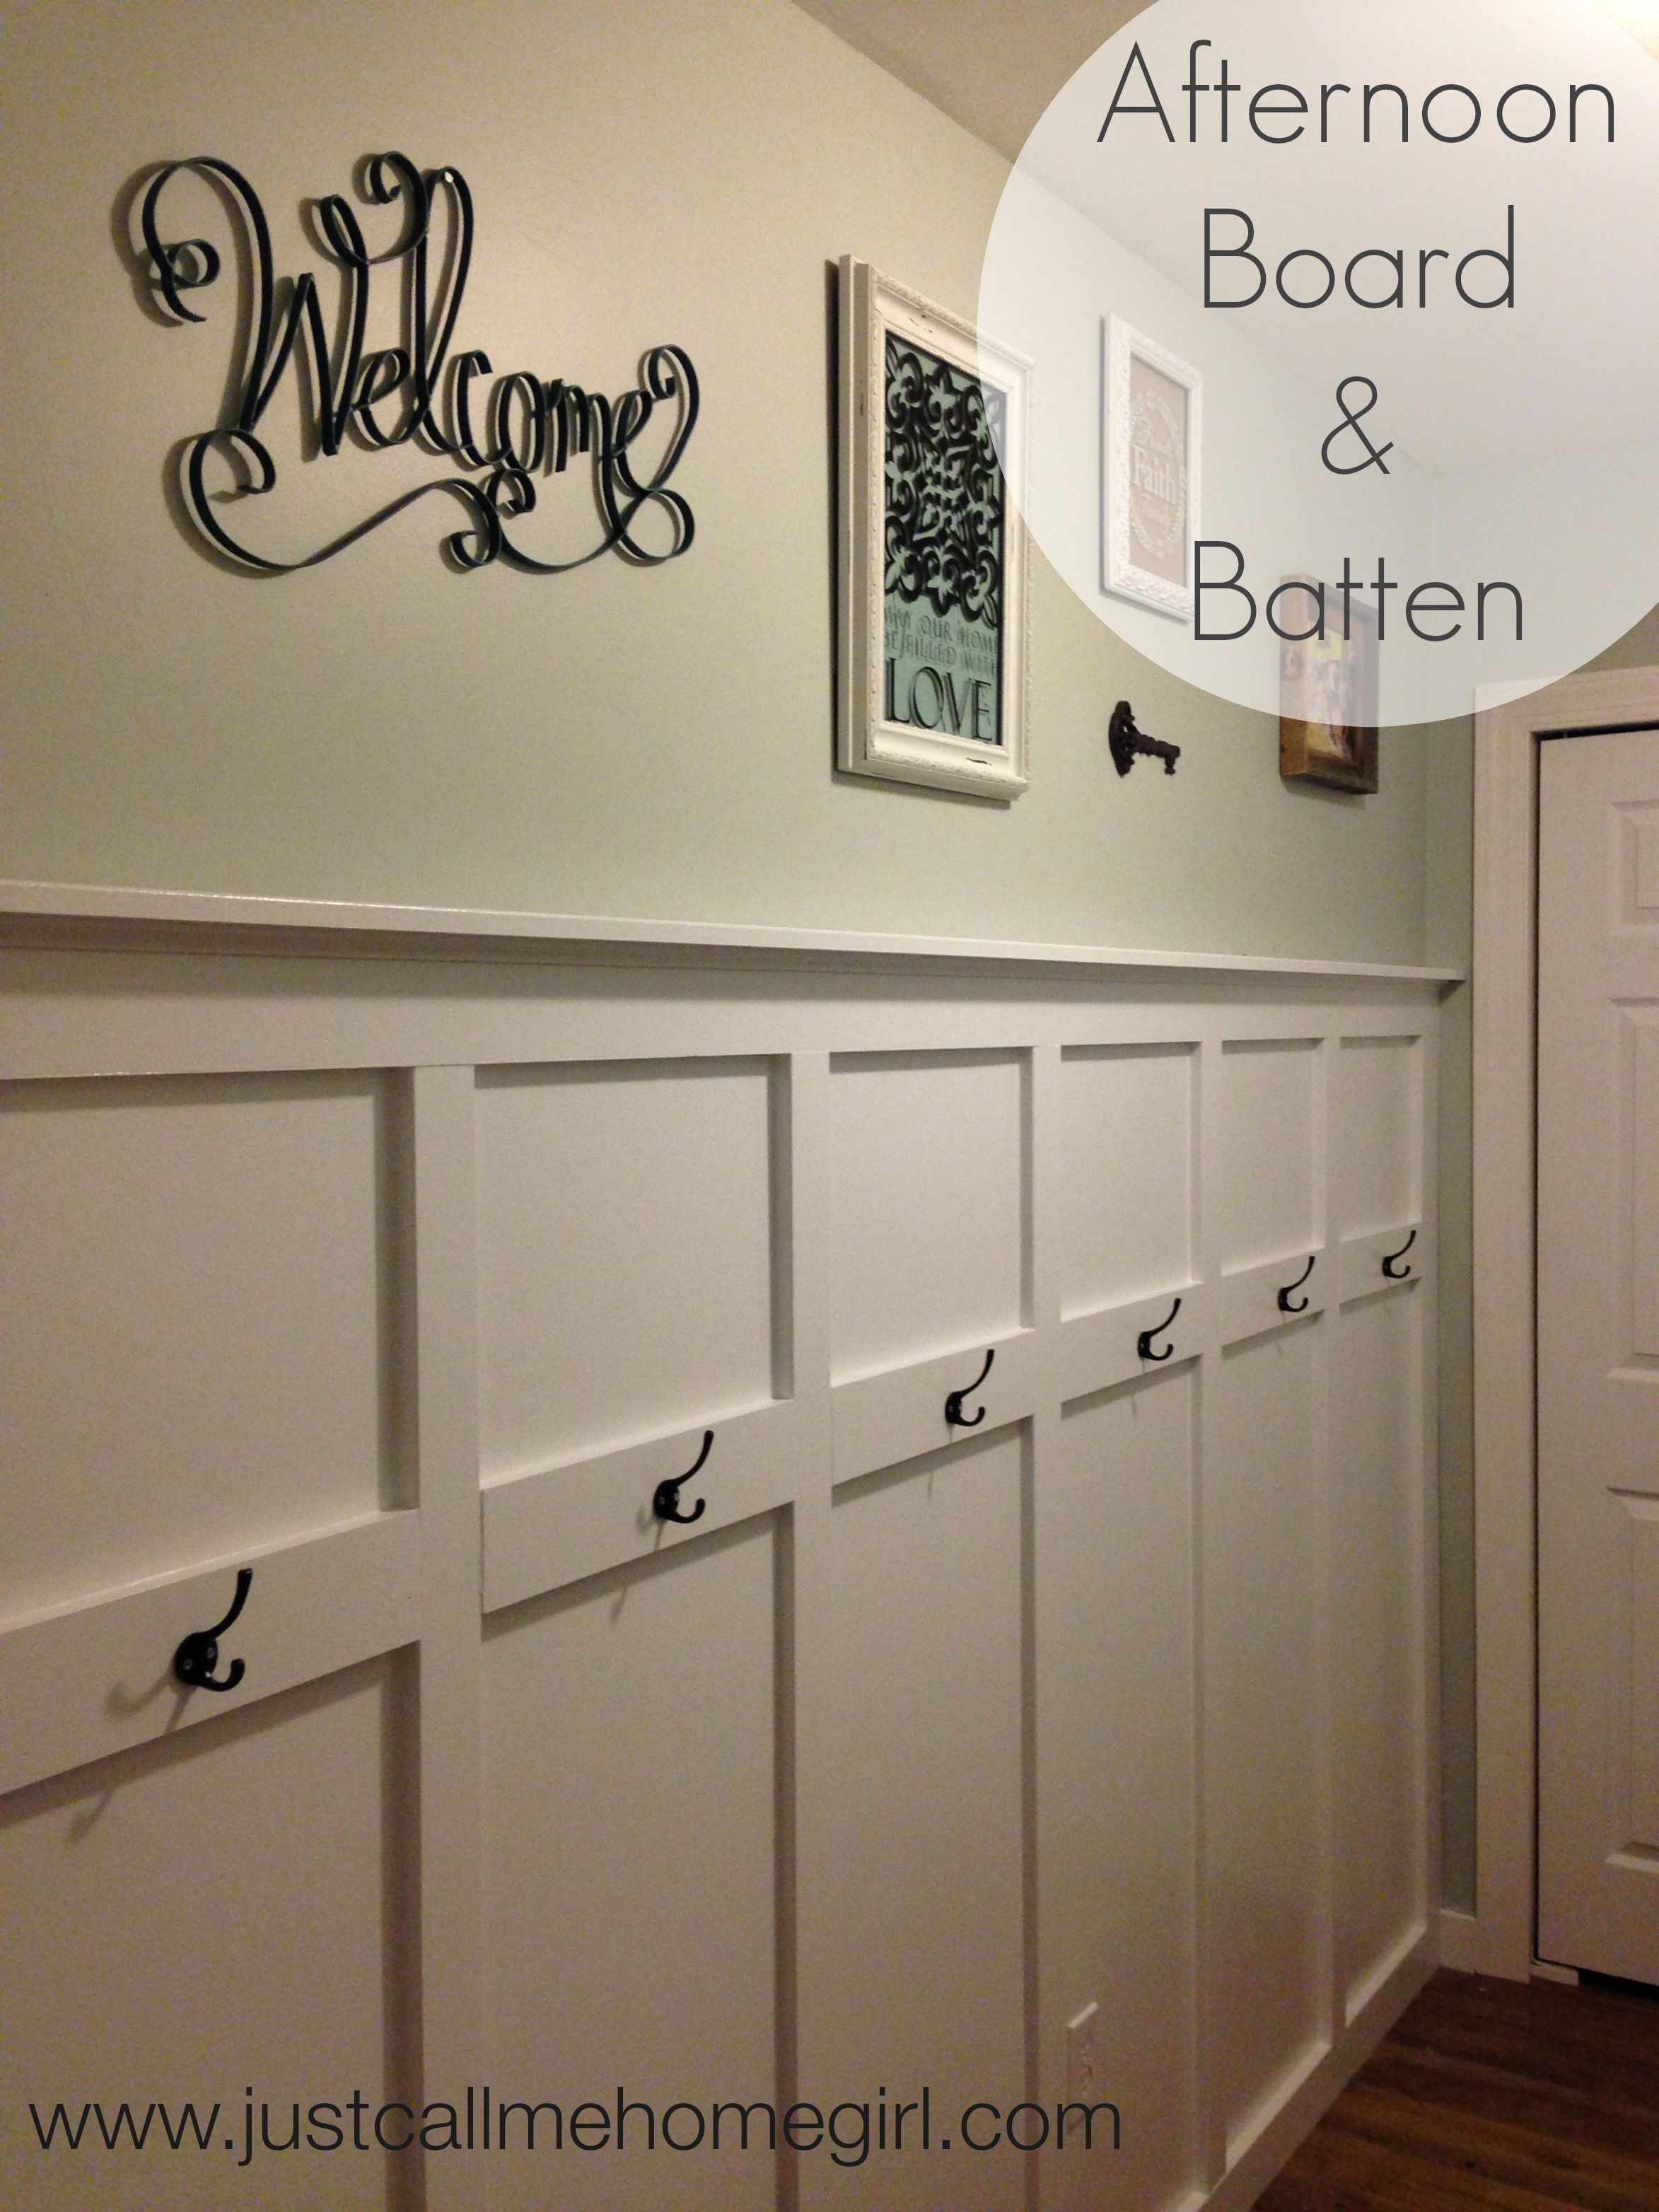 Wainscoting Dining Room Afternoon Board And Batten Just Call Me Homegirl